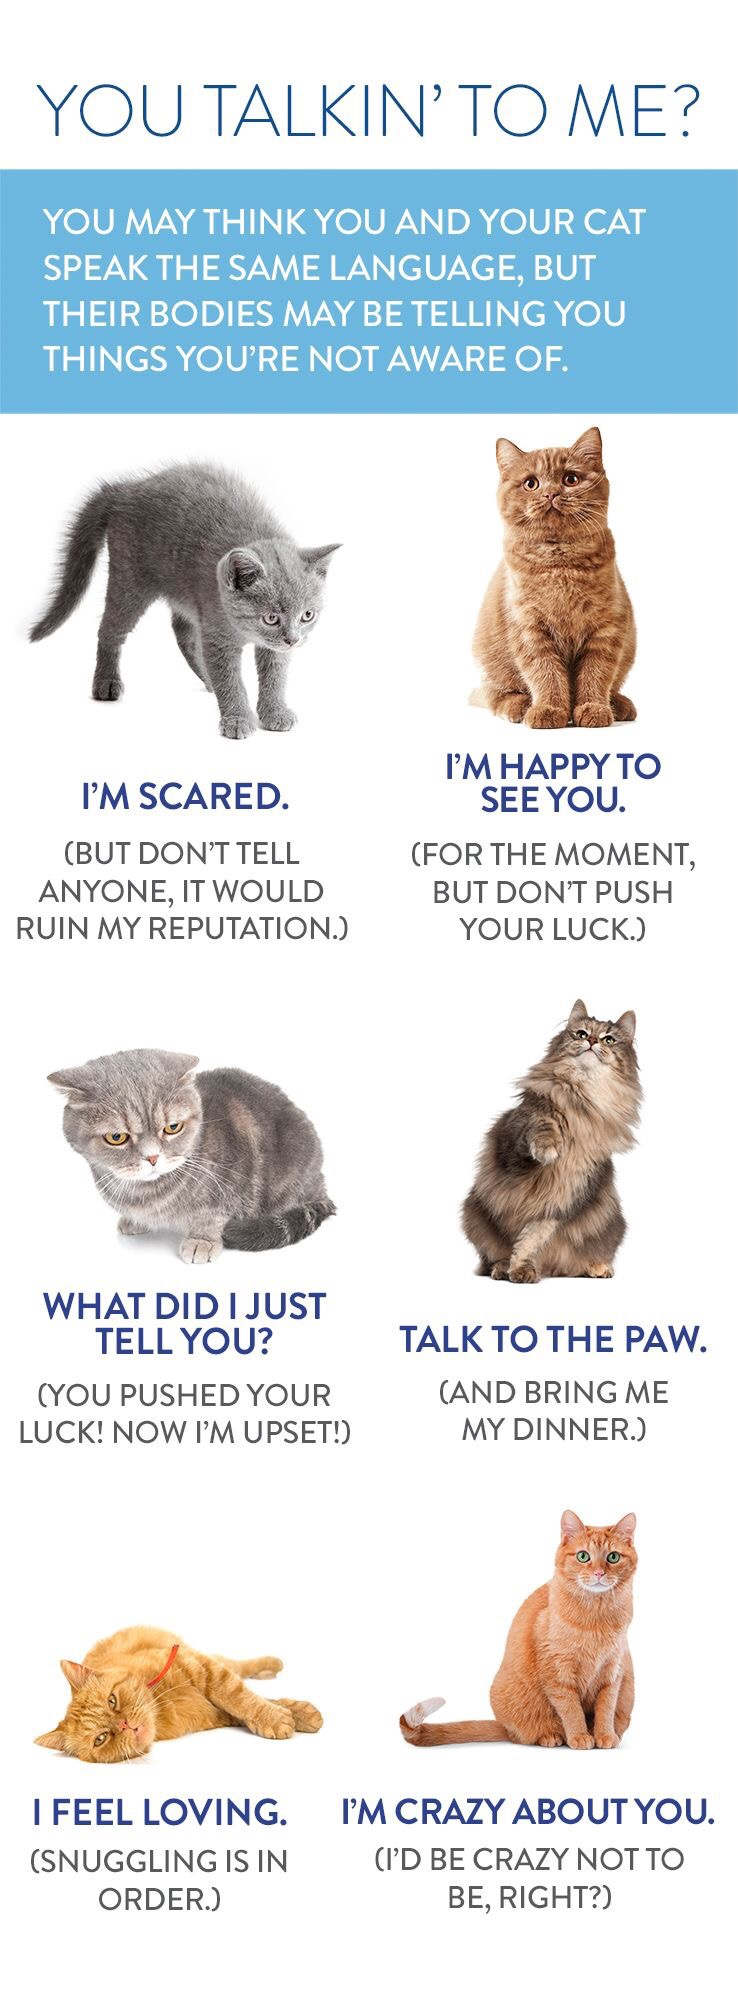 HOW TO SPEAK CAT THE ESSENTIAL PRIMER OF CAT LANGUAGE BY ALEXANDRA SELLERS 11/16